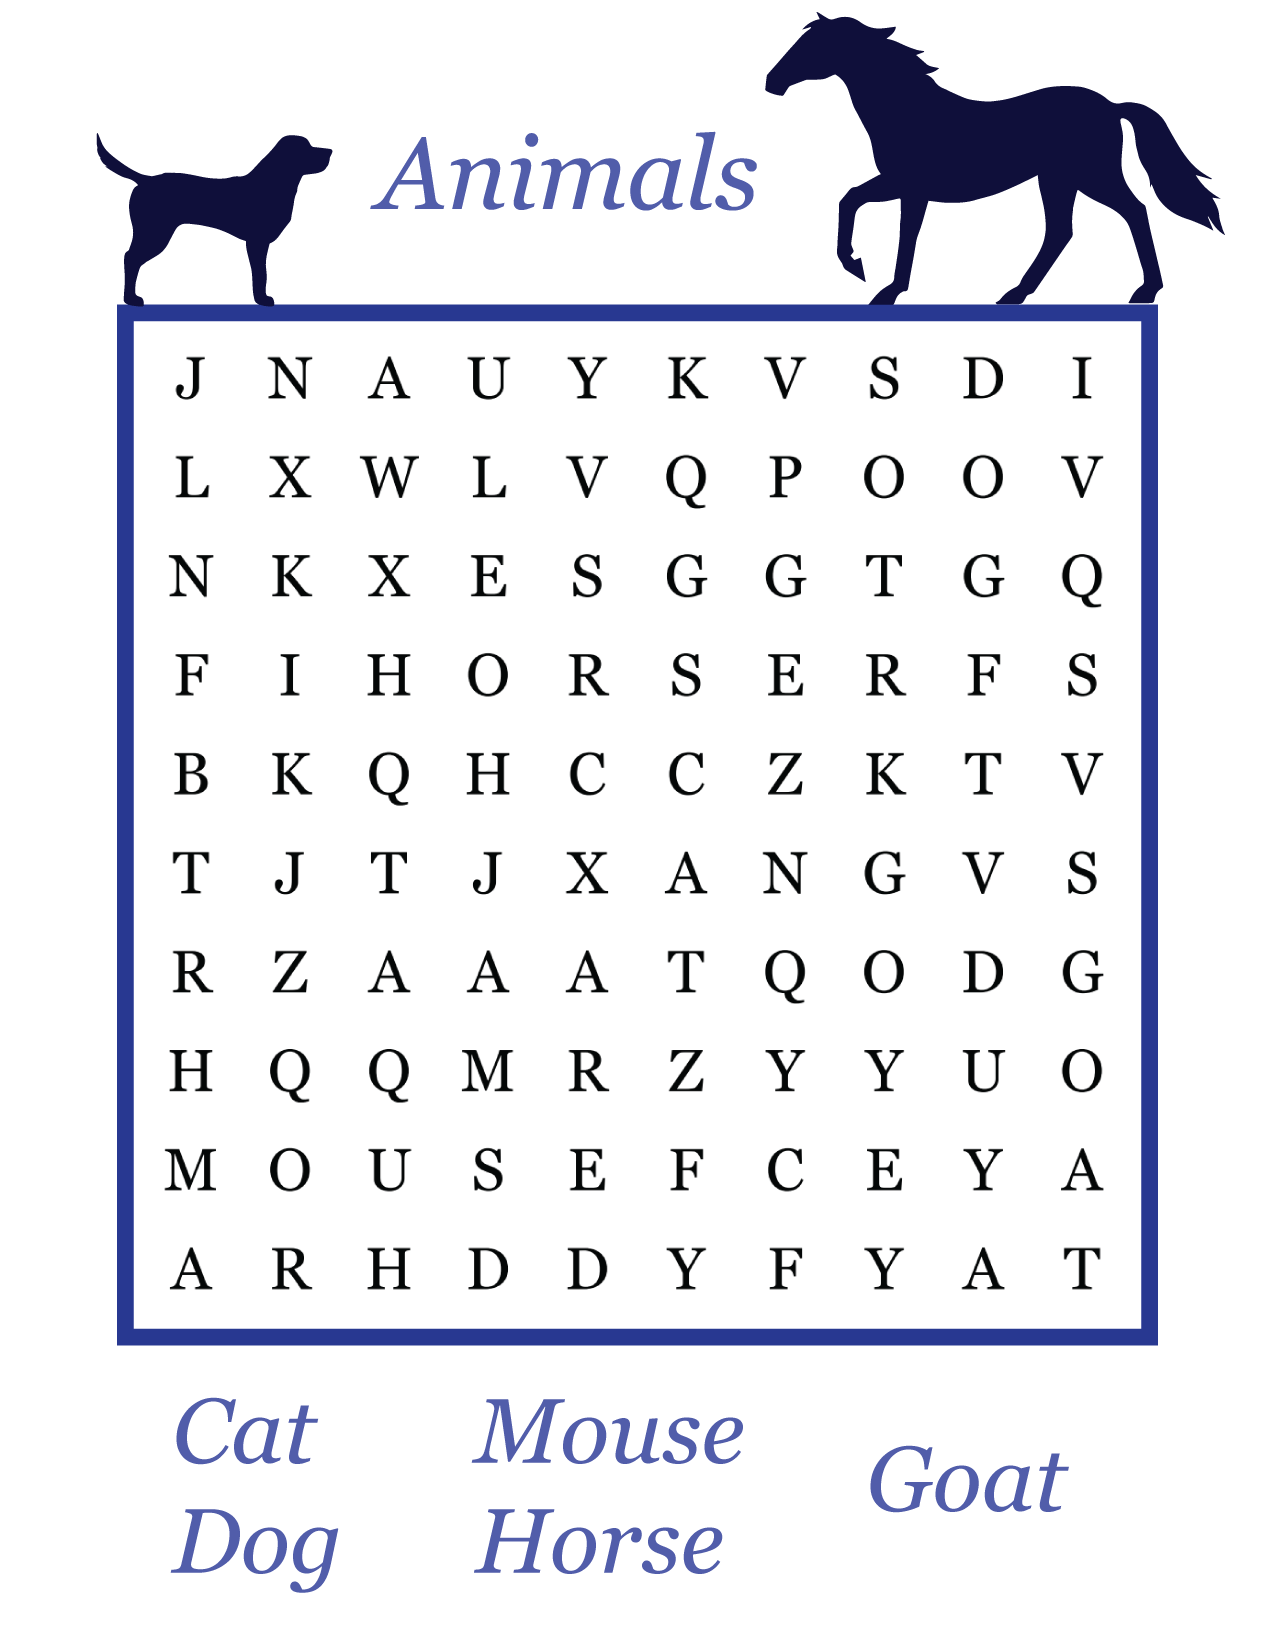 Printable easy word search games for kids - Printerfriend.ly